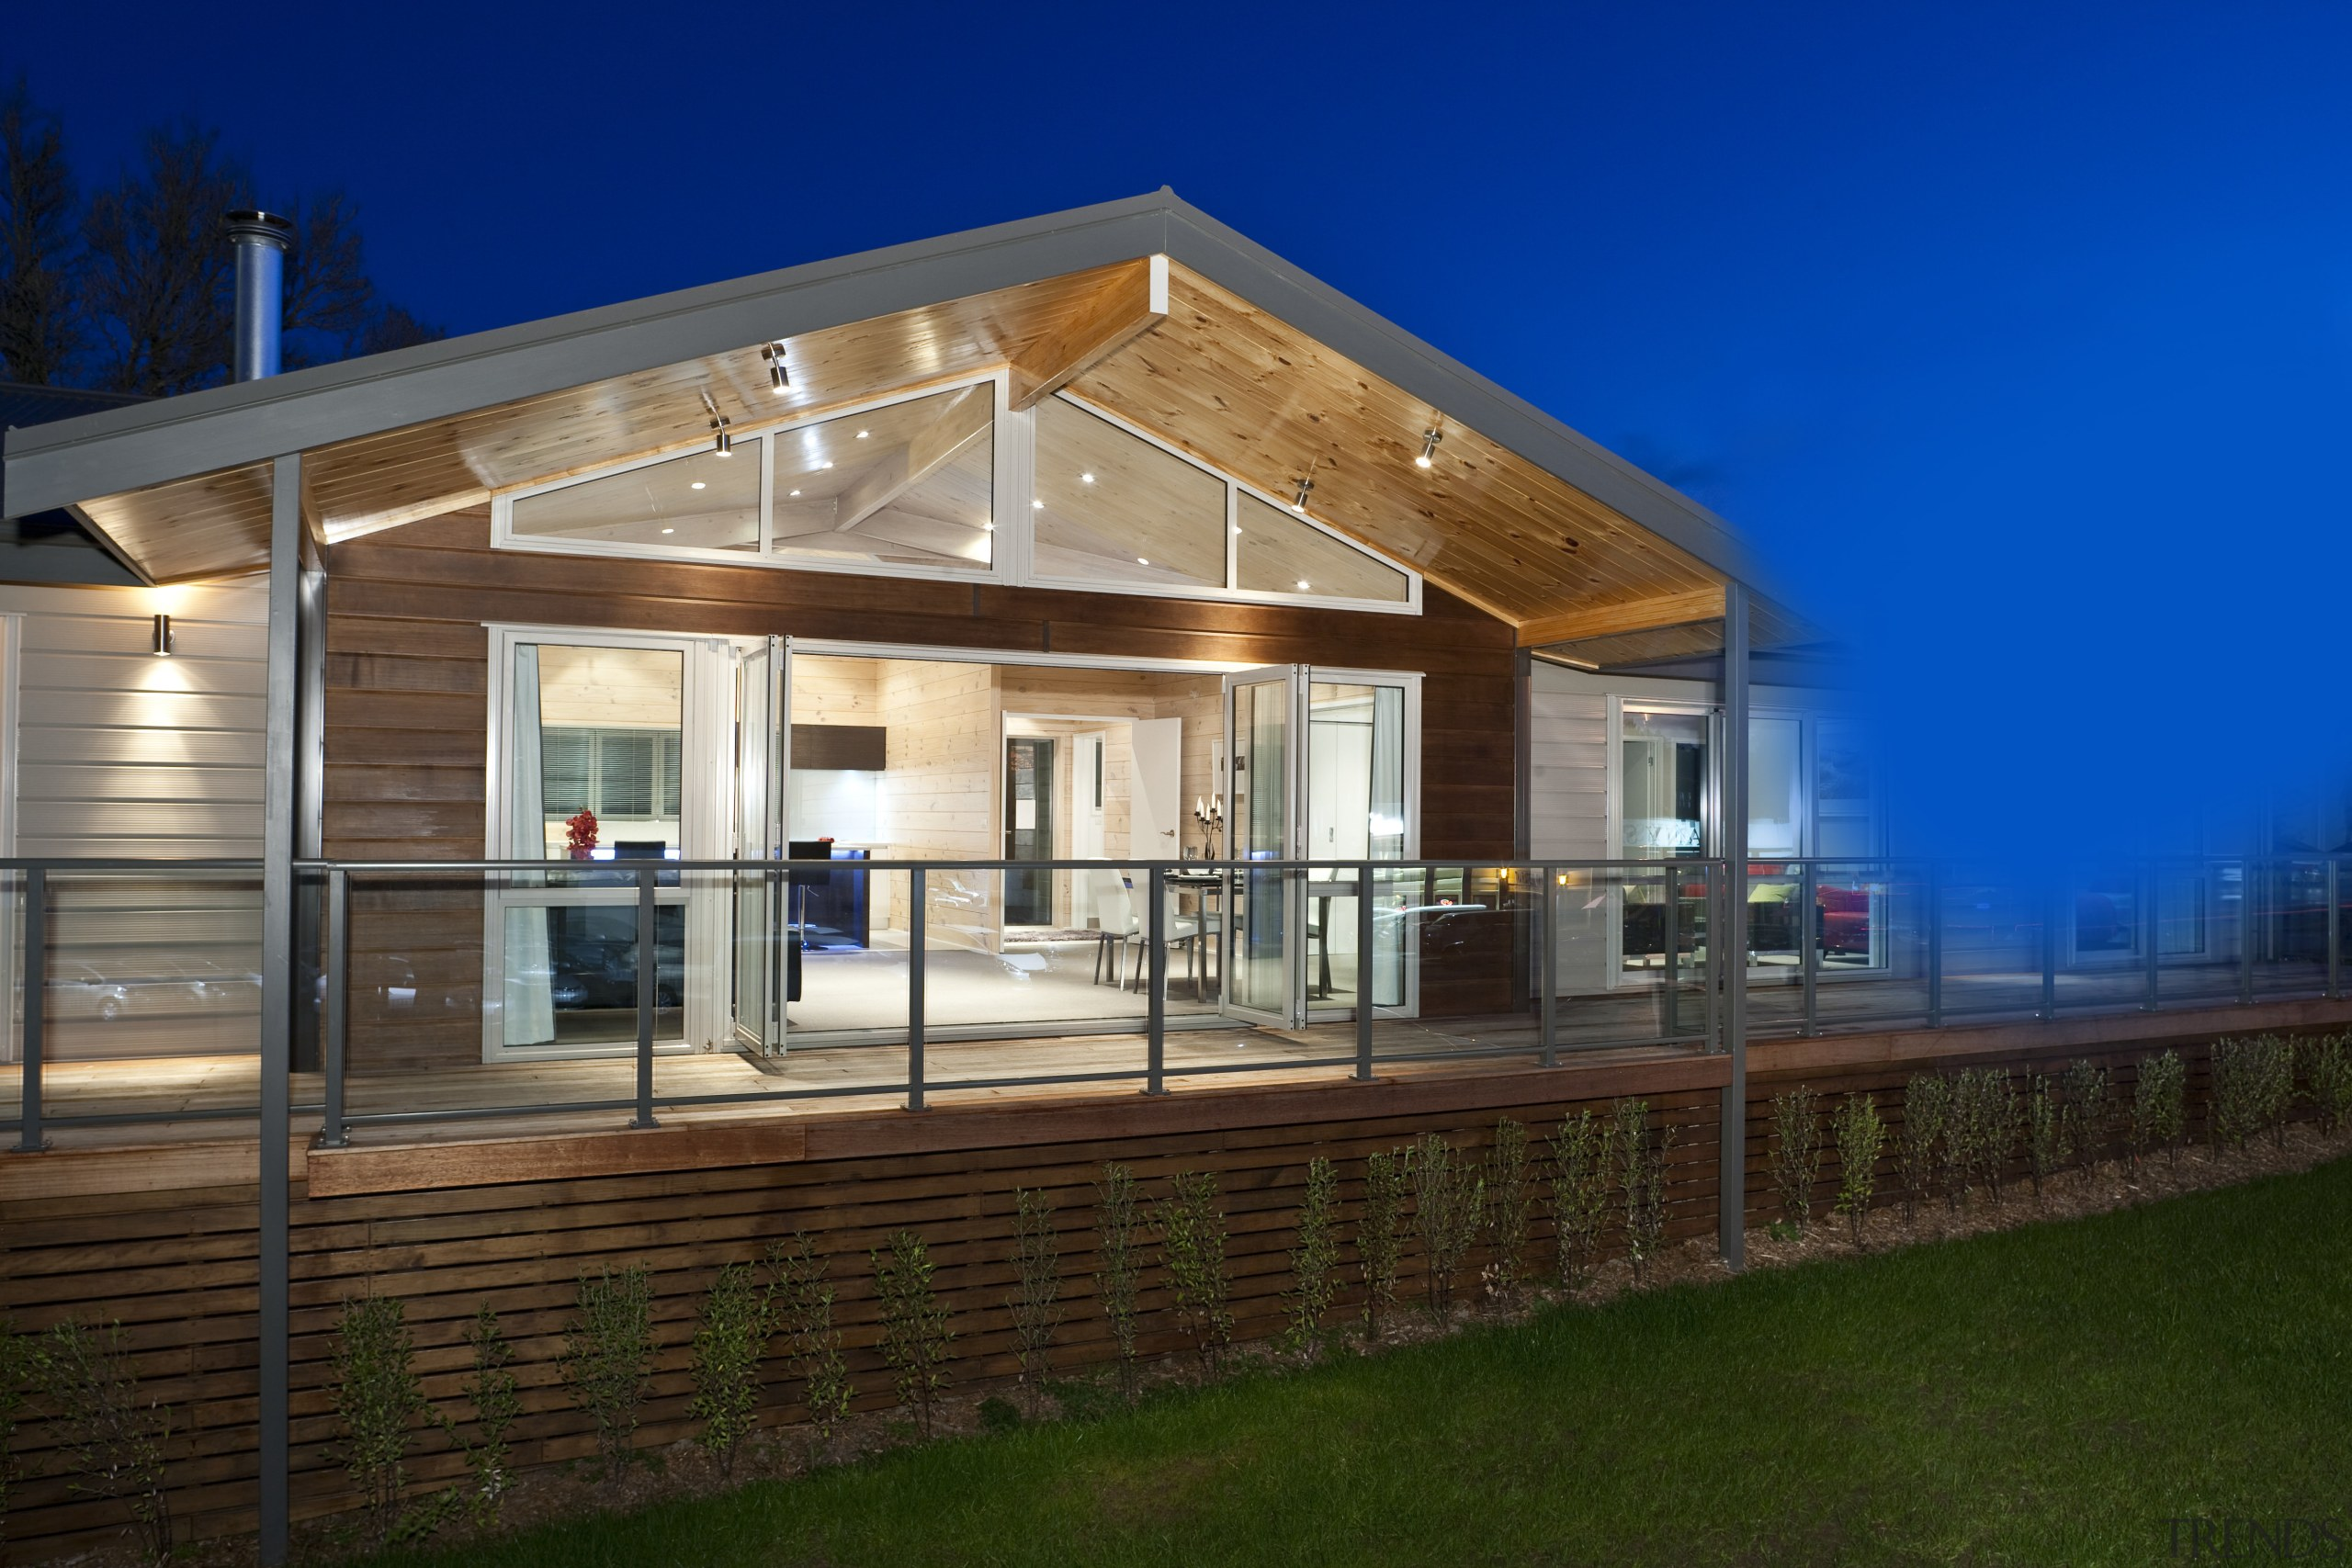 Exterior view of this contemporary home - Exterior architecture, cottage, elevation, facade, home, house, lighting, real estate, residential area, siding, sky, window, brown, blue